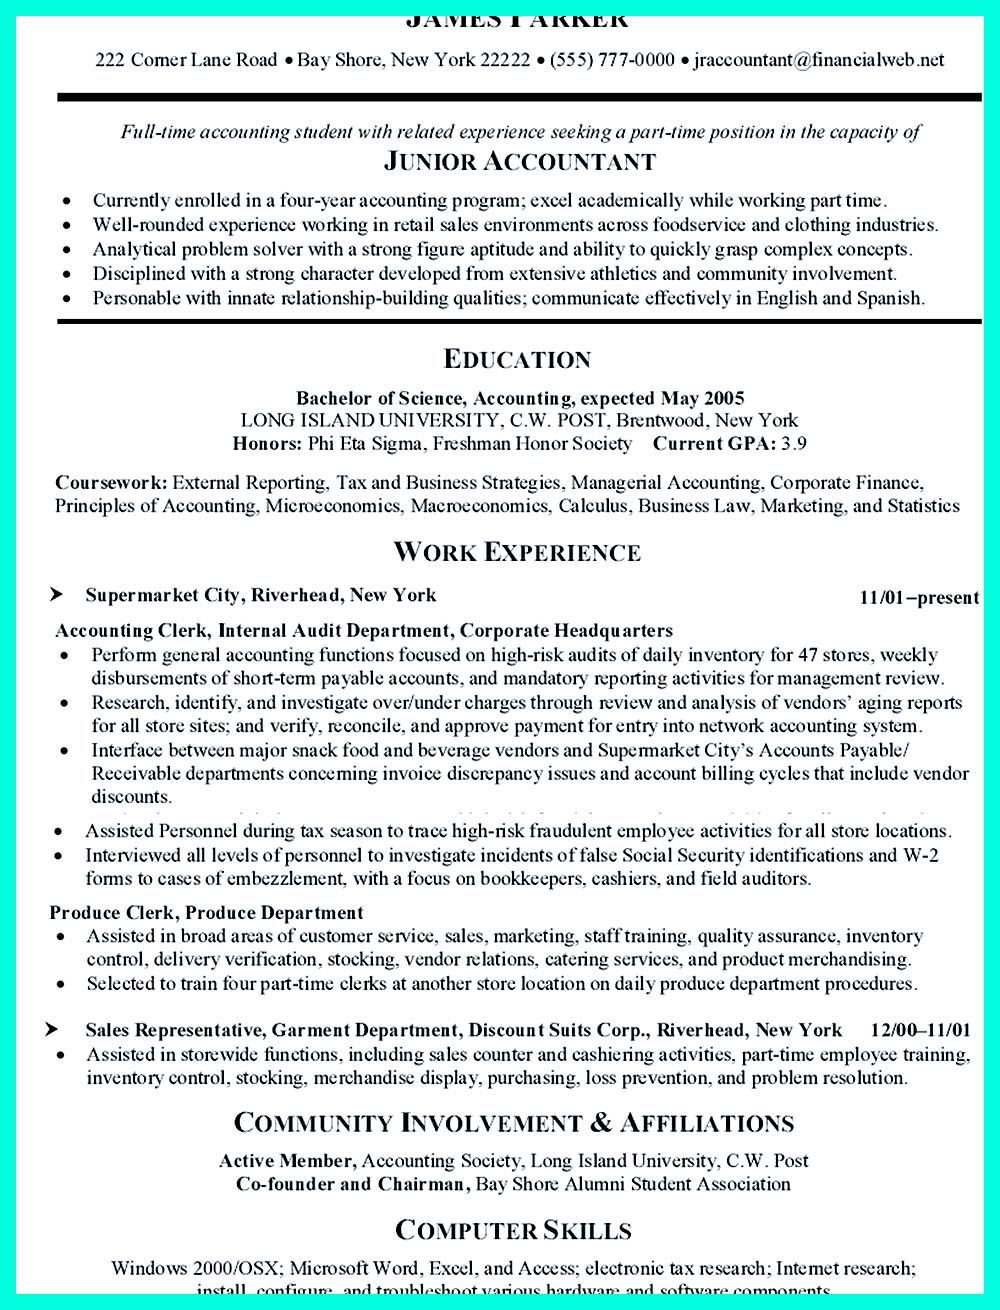 Clerical Resume Sample Think About The Order Of Writing